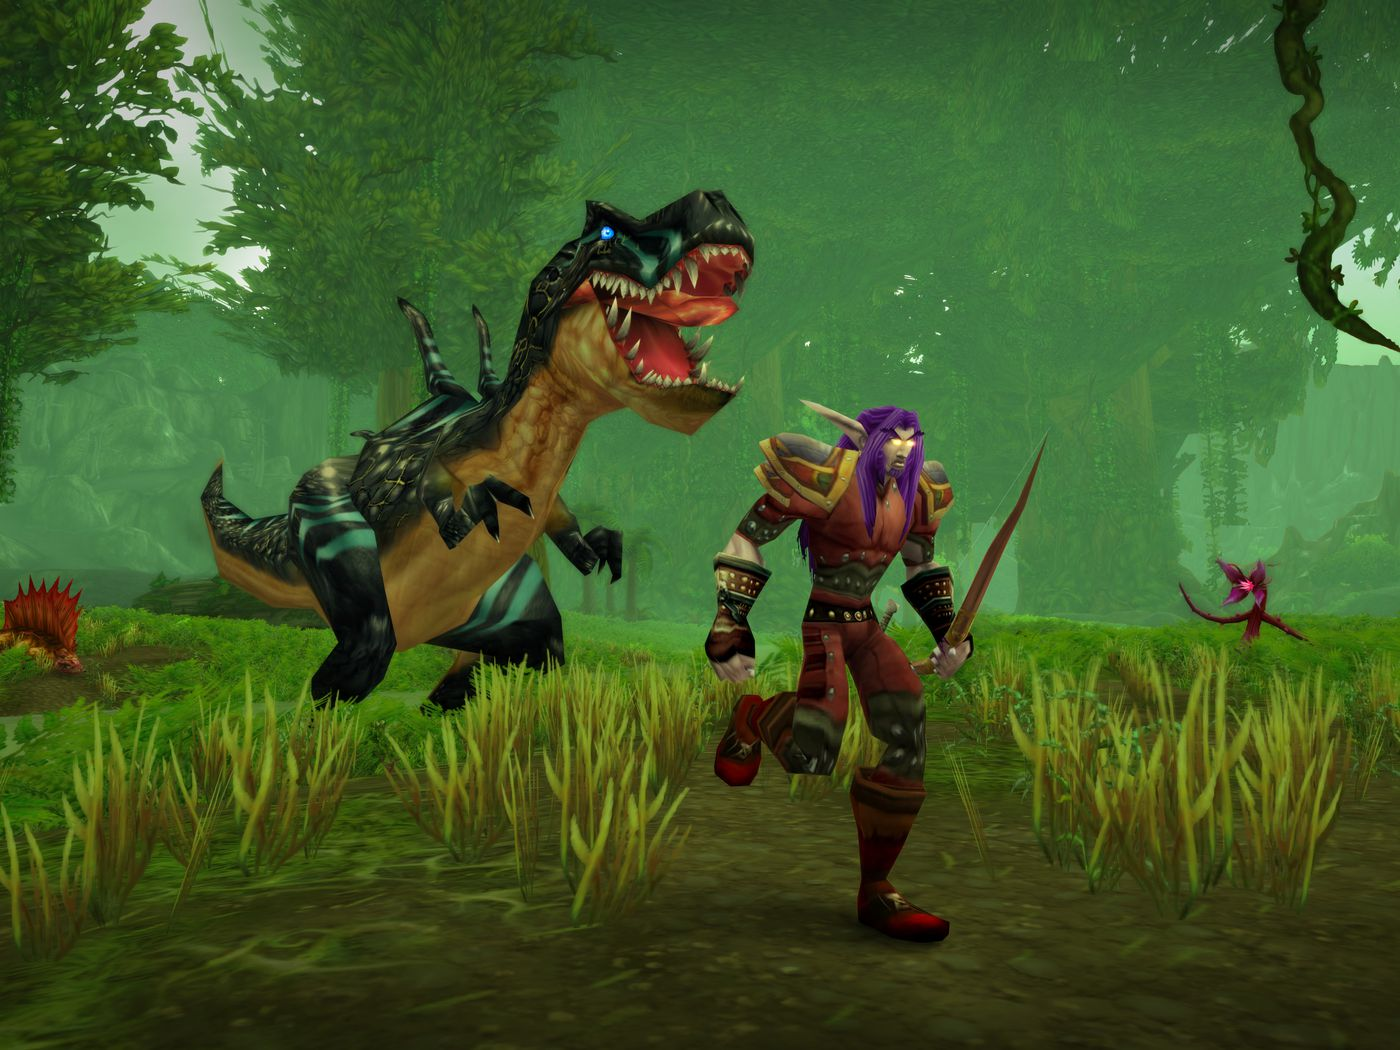 World Of Warcraft Classic Has Its First Level 60 Player Polygon